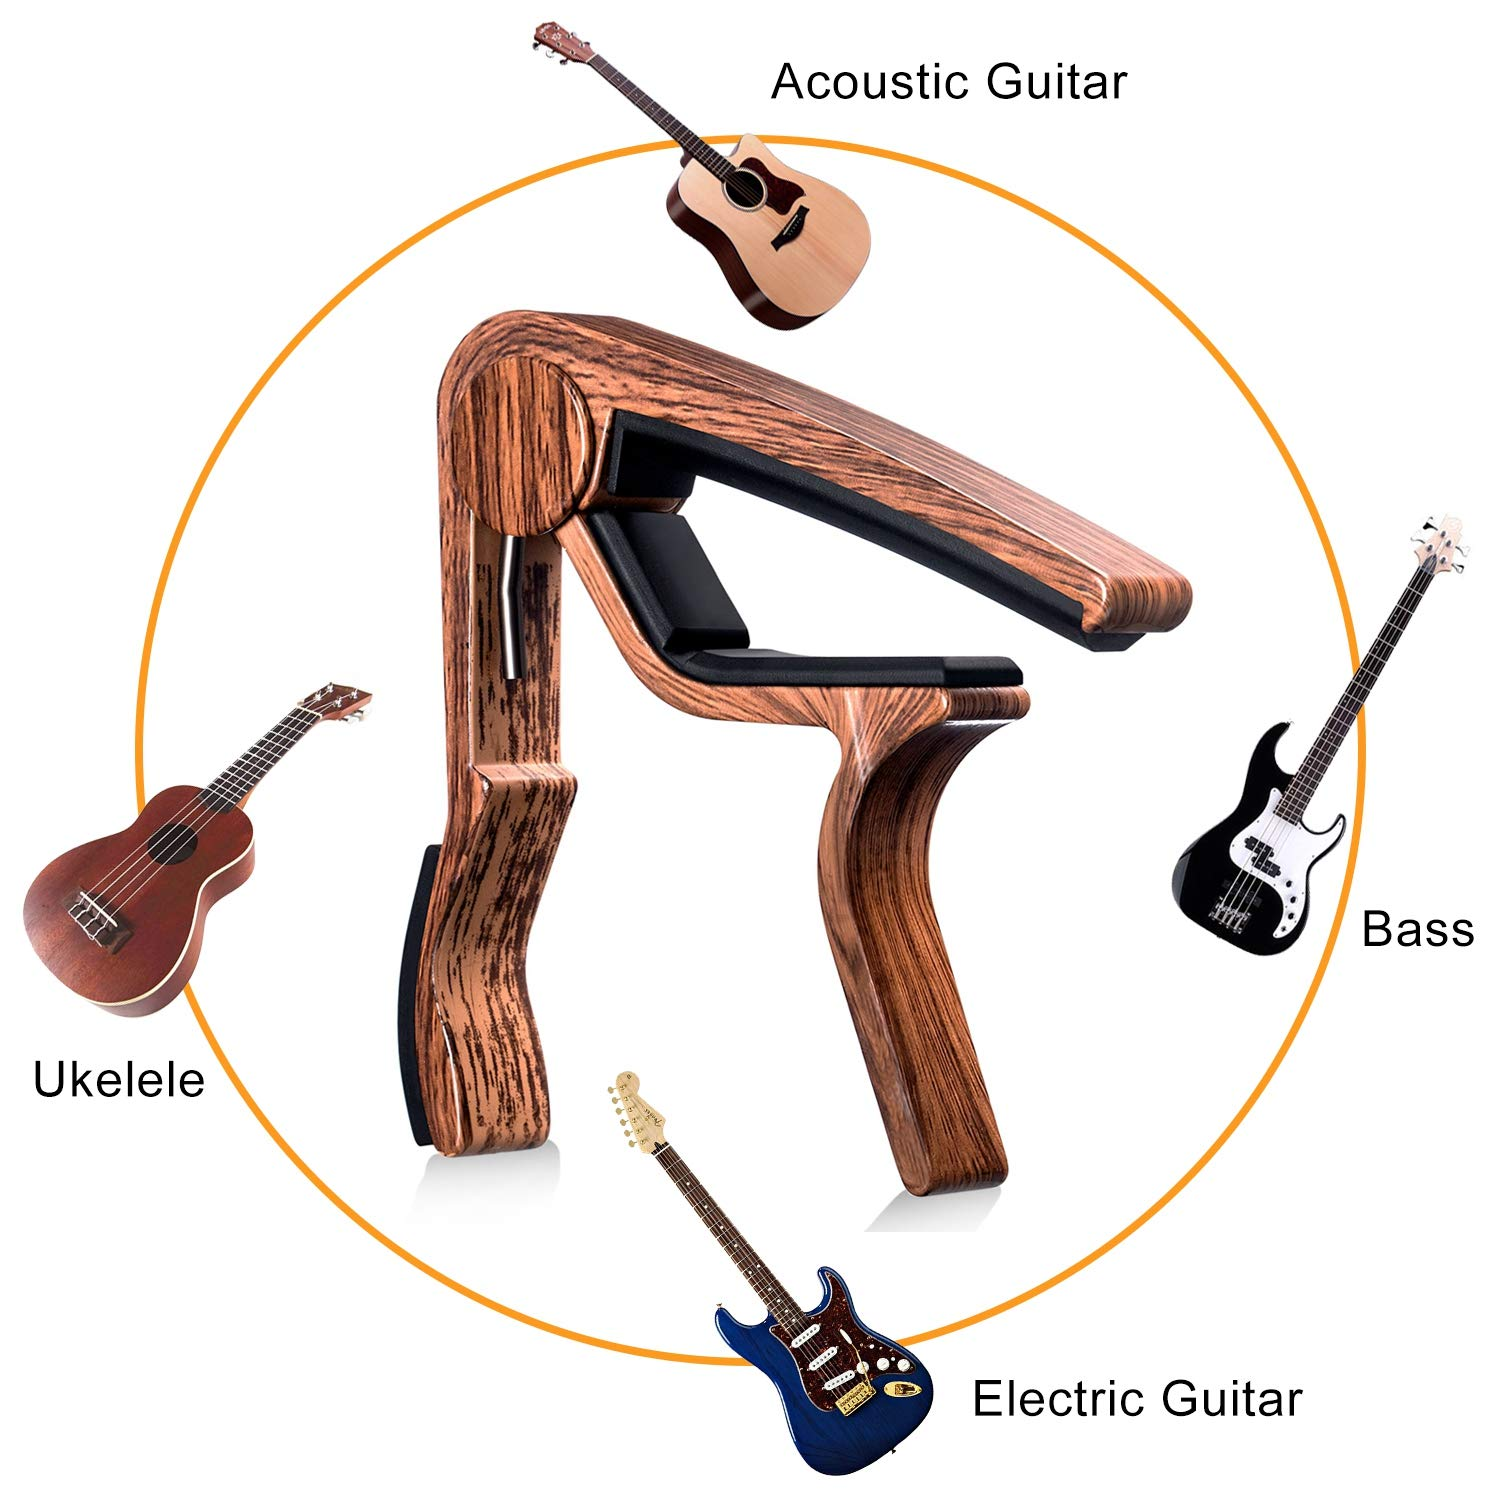 Moreyes Guitar Capo for Acoustic Guitar,Ukelele 2 Pack Electric Guitar with Wood Color Guitar Picks